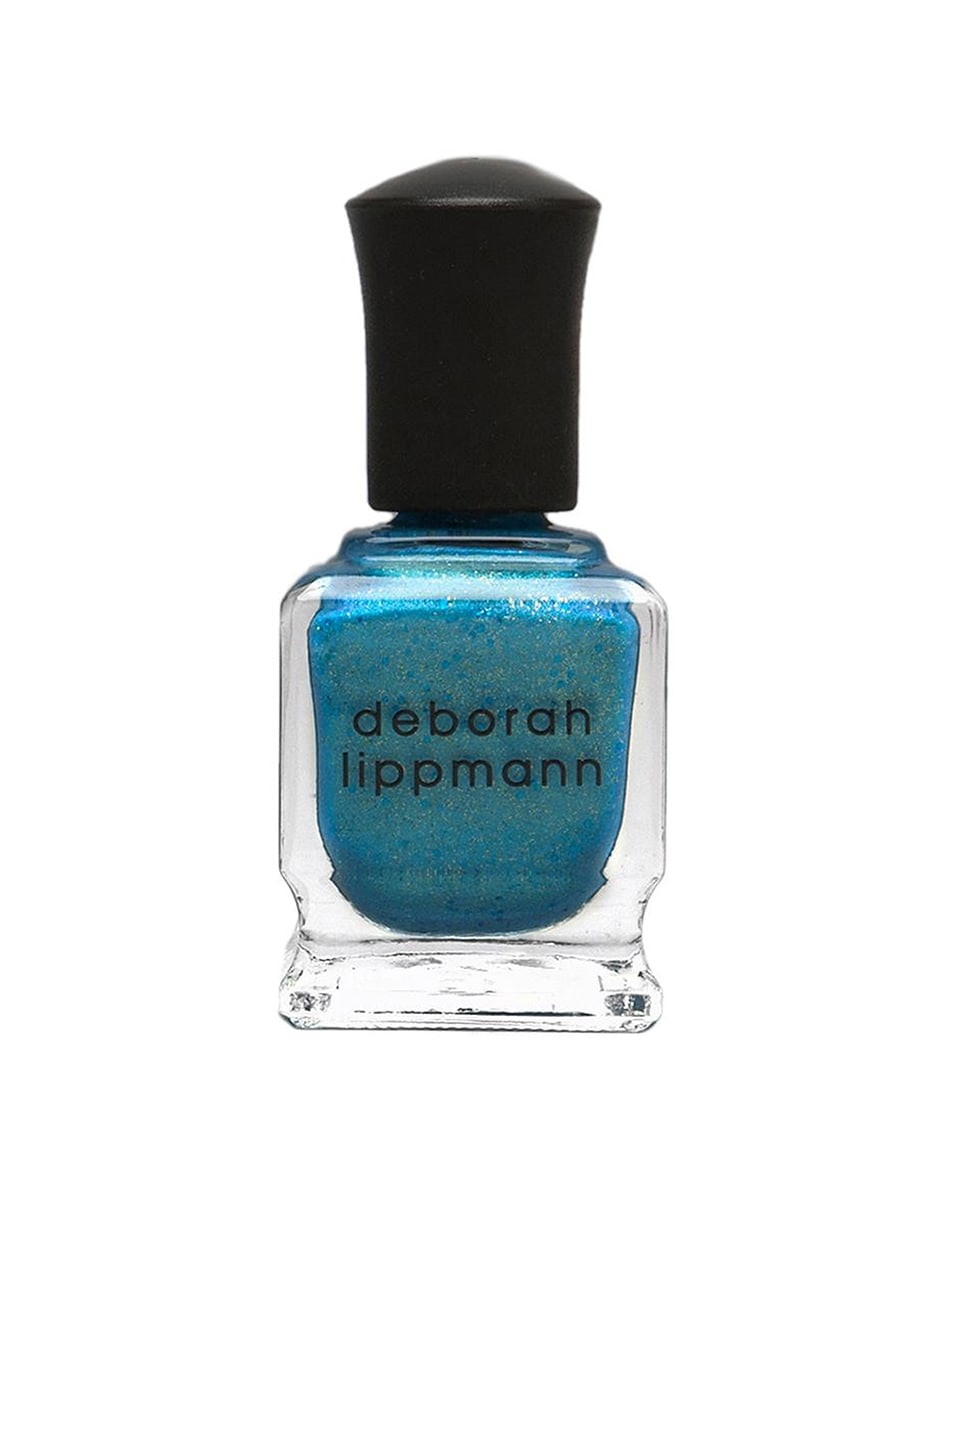 Deborah Lippmann Nail Lacquer in Mermaid's Eyes